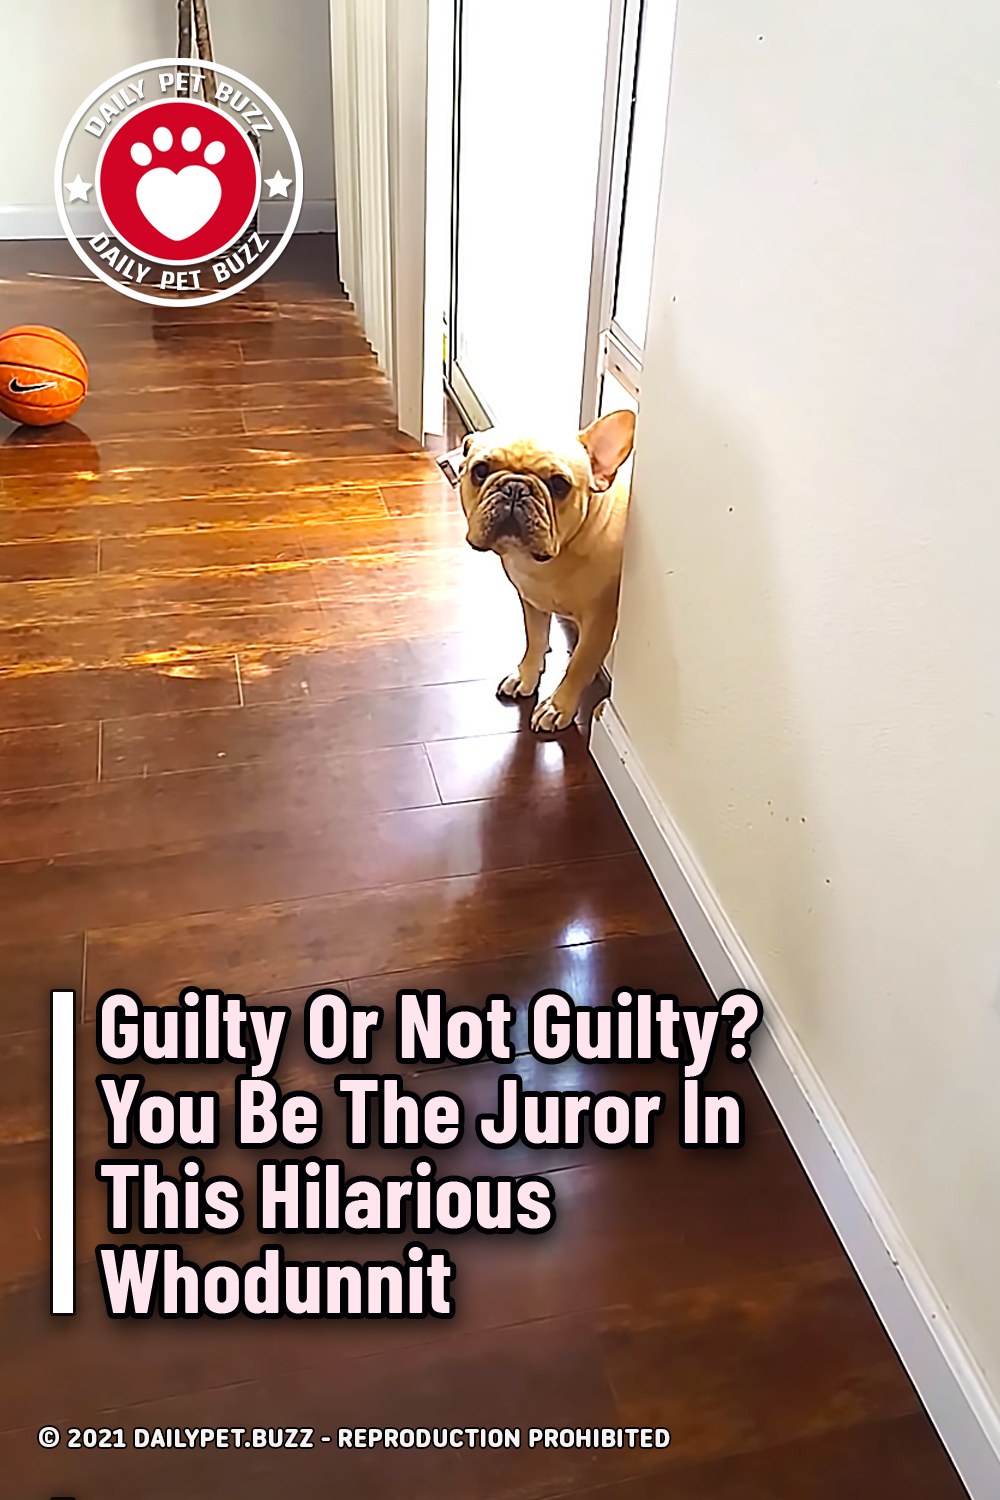 Guilty Or Not Guilty? You Be The Juror In This Hilarious Whodunnit